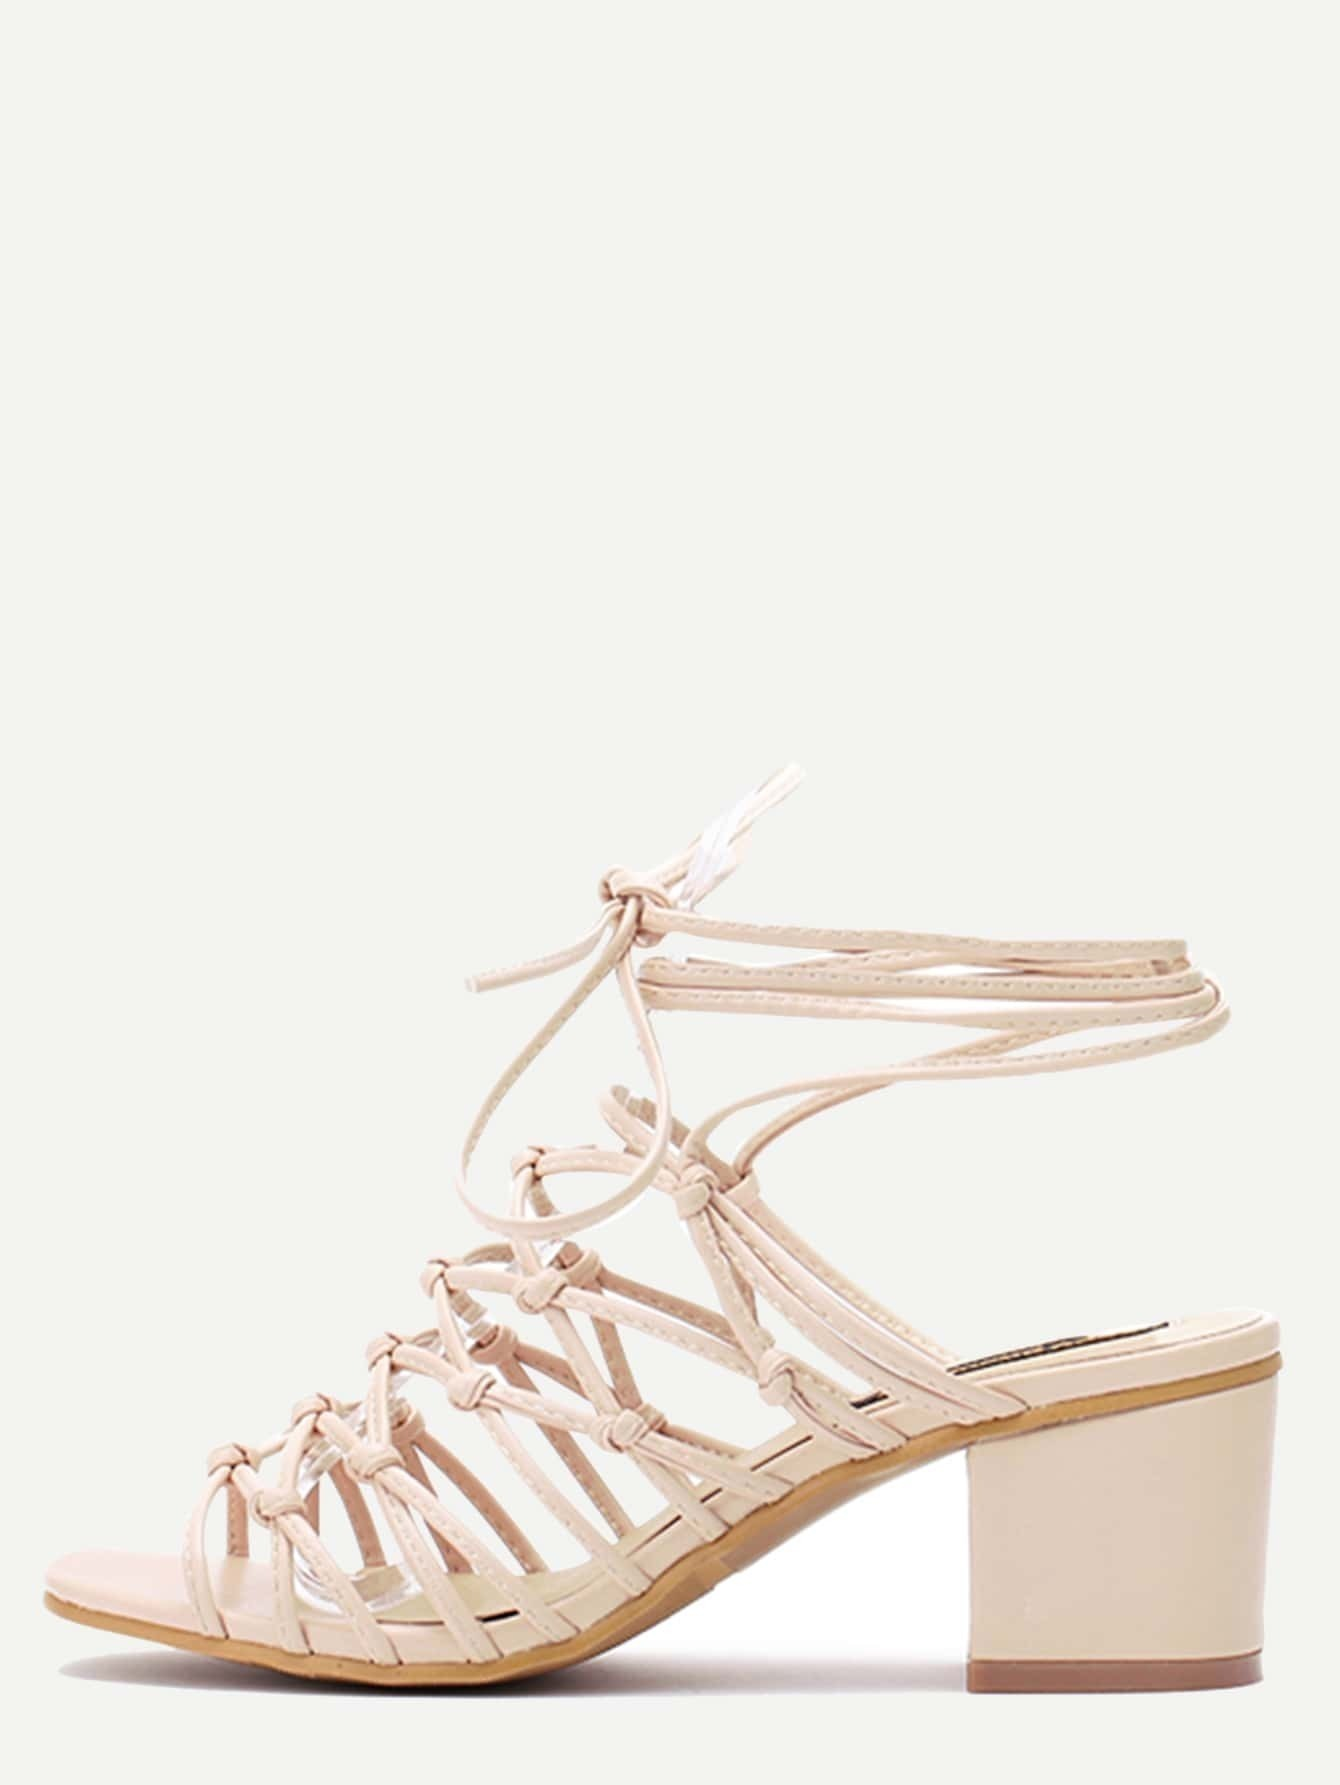 777e5c3c7310 Beige Square Peep Toe Knotted Lace-up Chunky Sandals EmmaCloth-Women ...